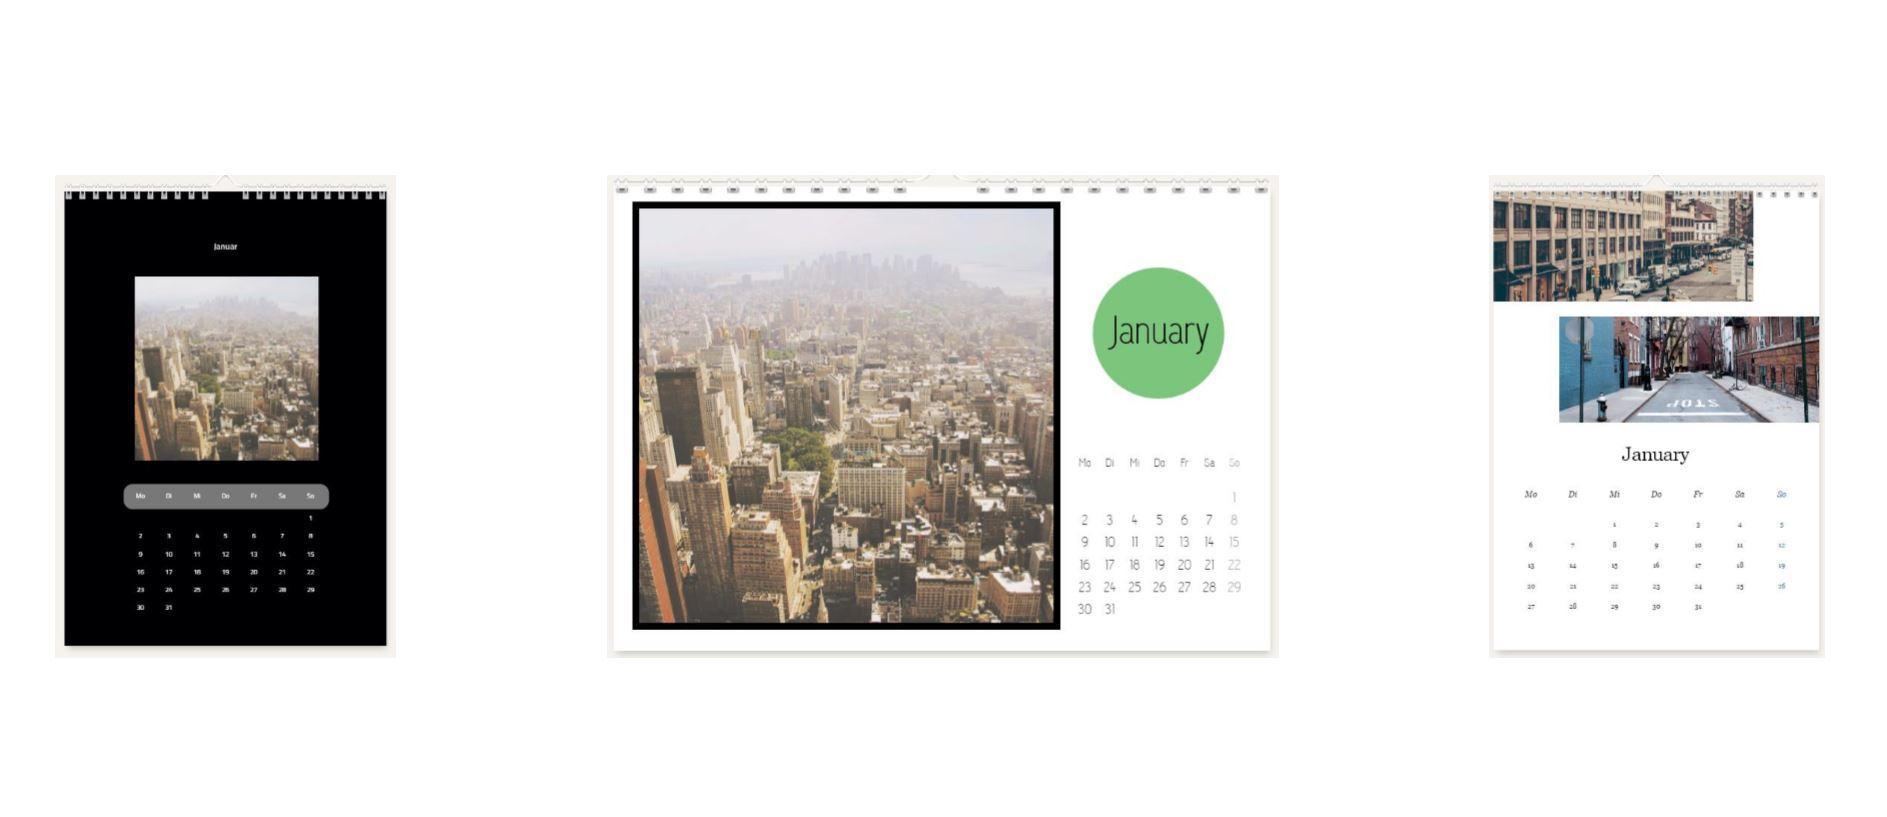 foto kalender whitewall formen und text